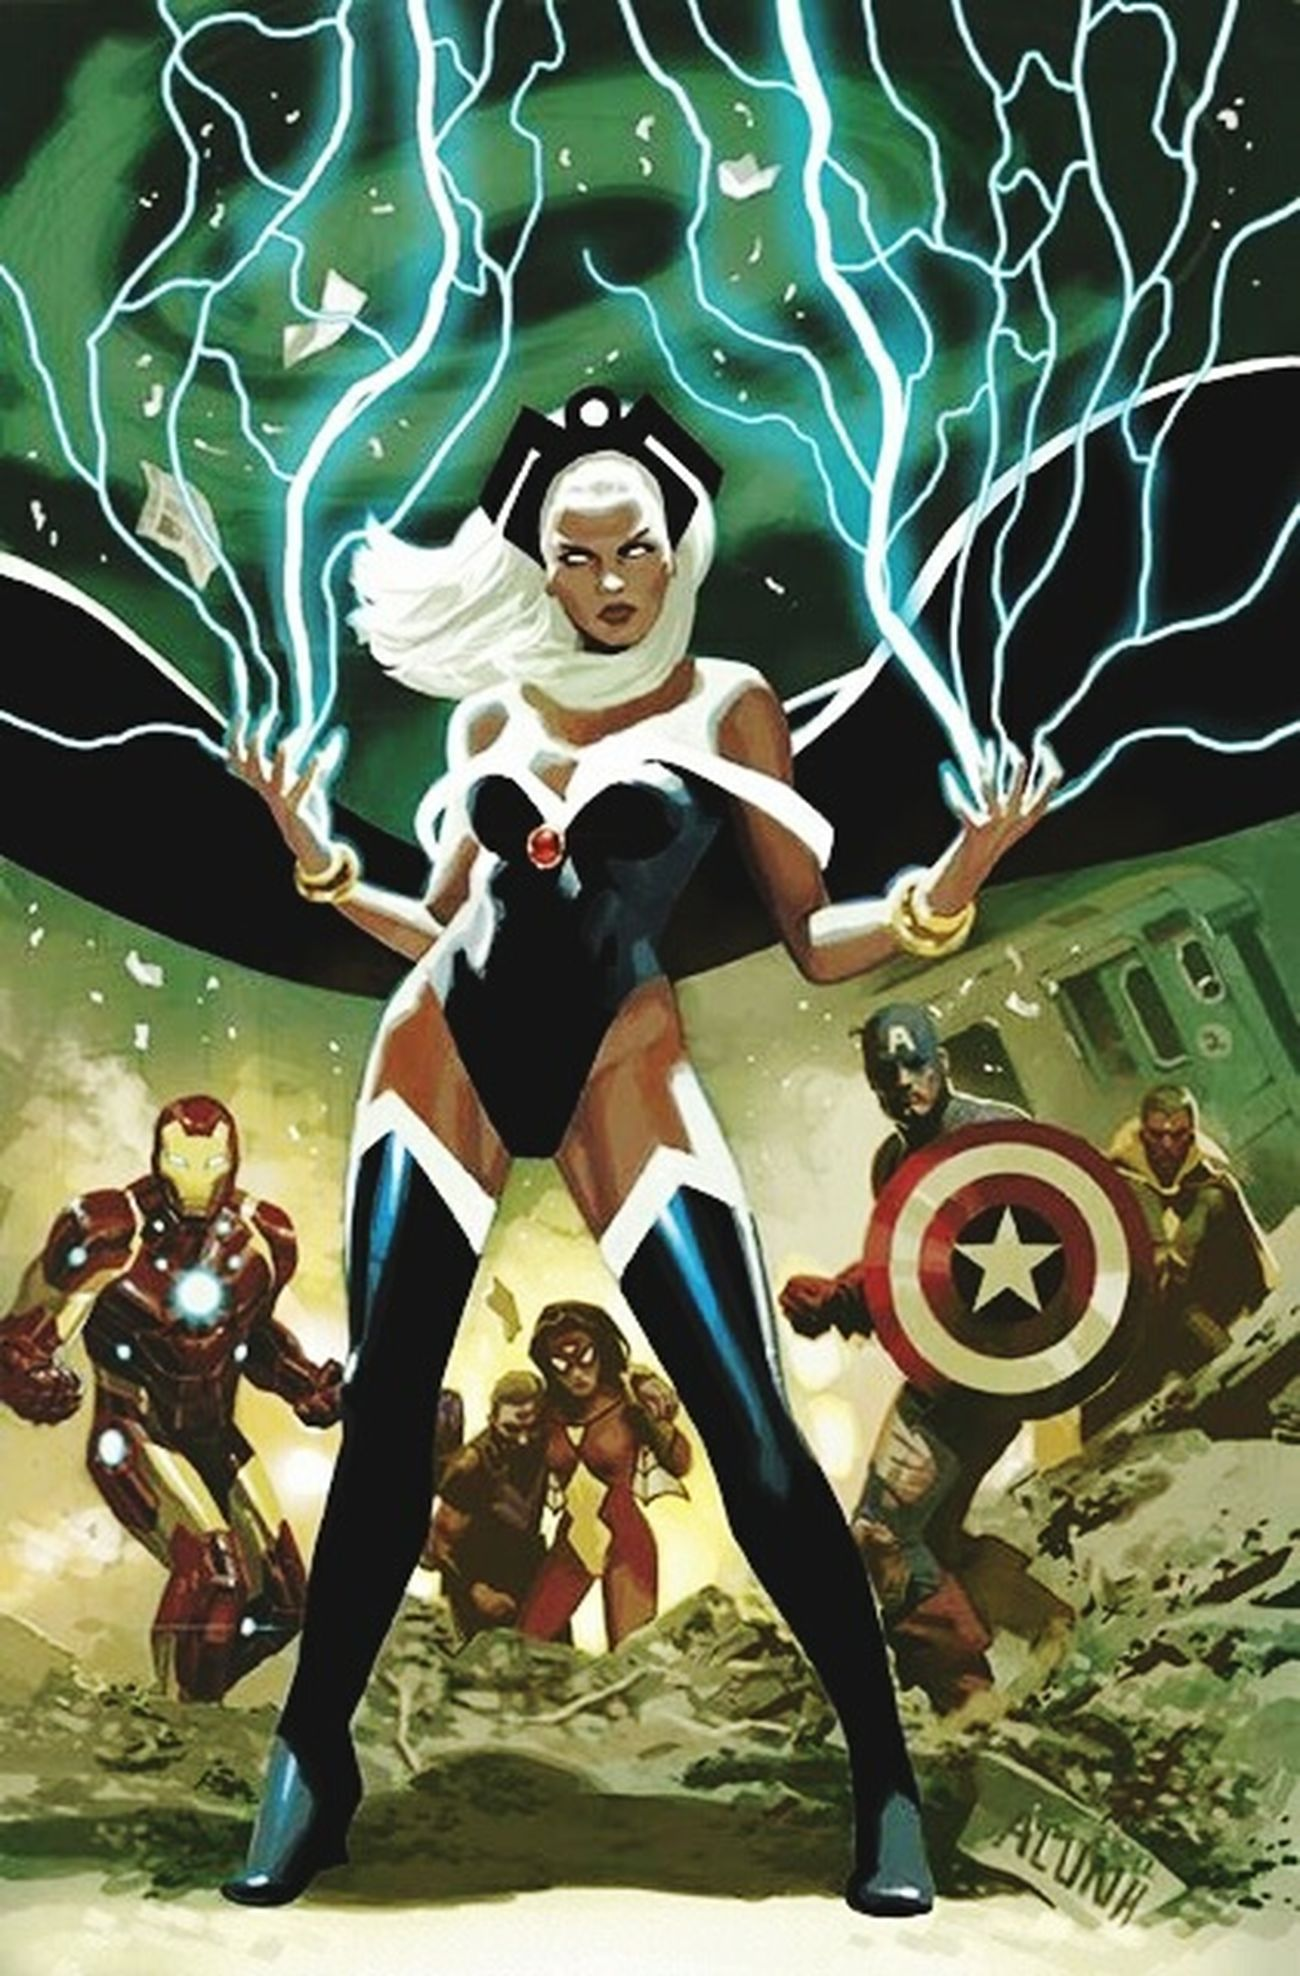 ⚡Storm⚡ one of my favorite X-men !! I freaking love her!!! IM SUCH A NERD? Storm Powerful Mutant Nerd Ororo Monroe Est.1975 I Summon The Winds Gay Gayguys